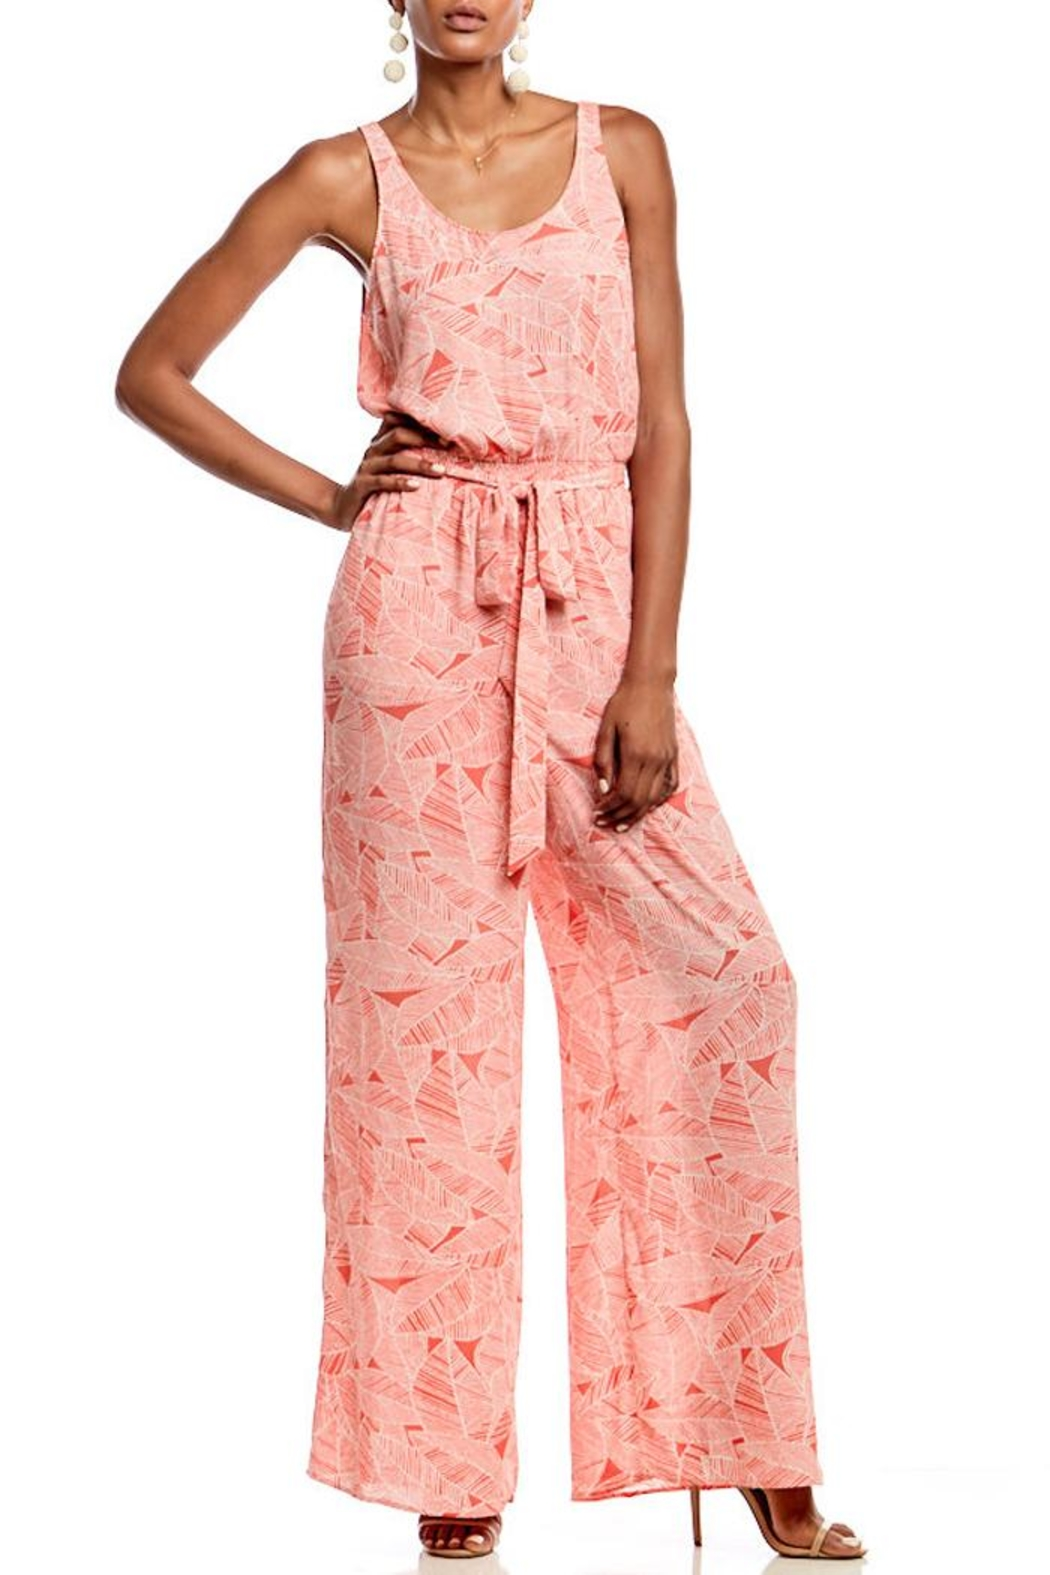 Asher by Fab'rik Benjamin Jumpsuit - Coral - Main Image